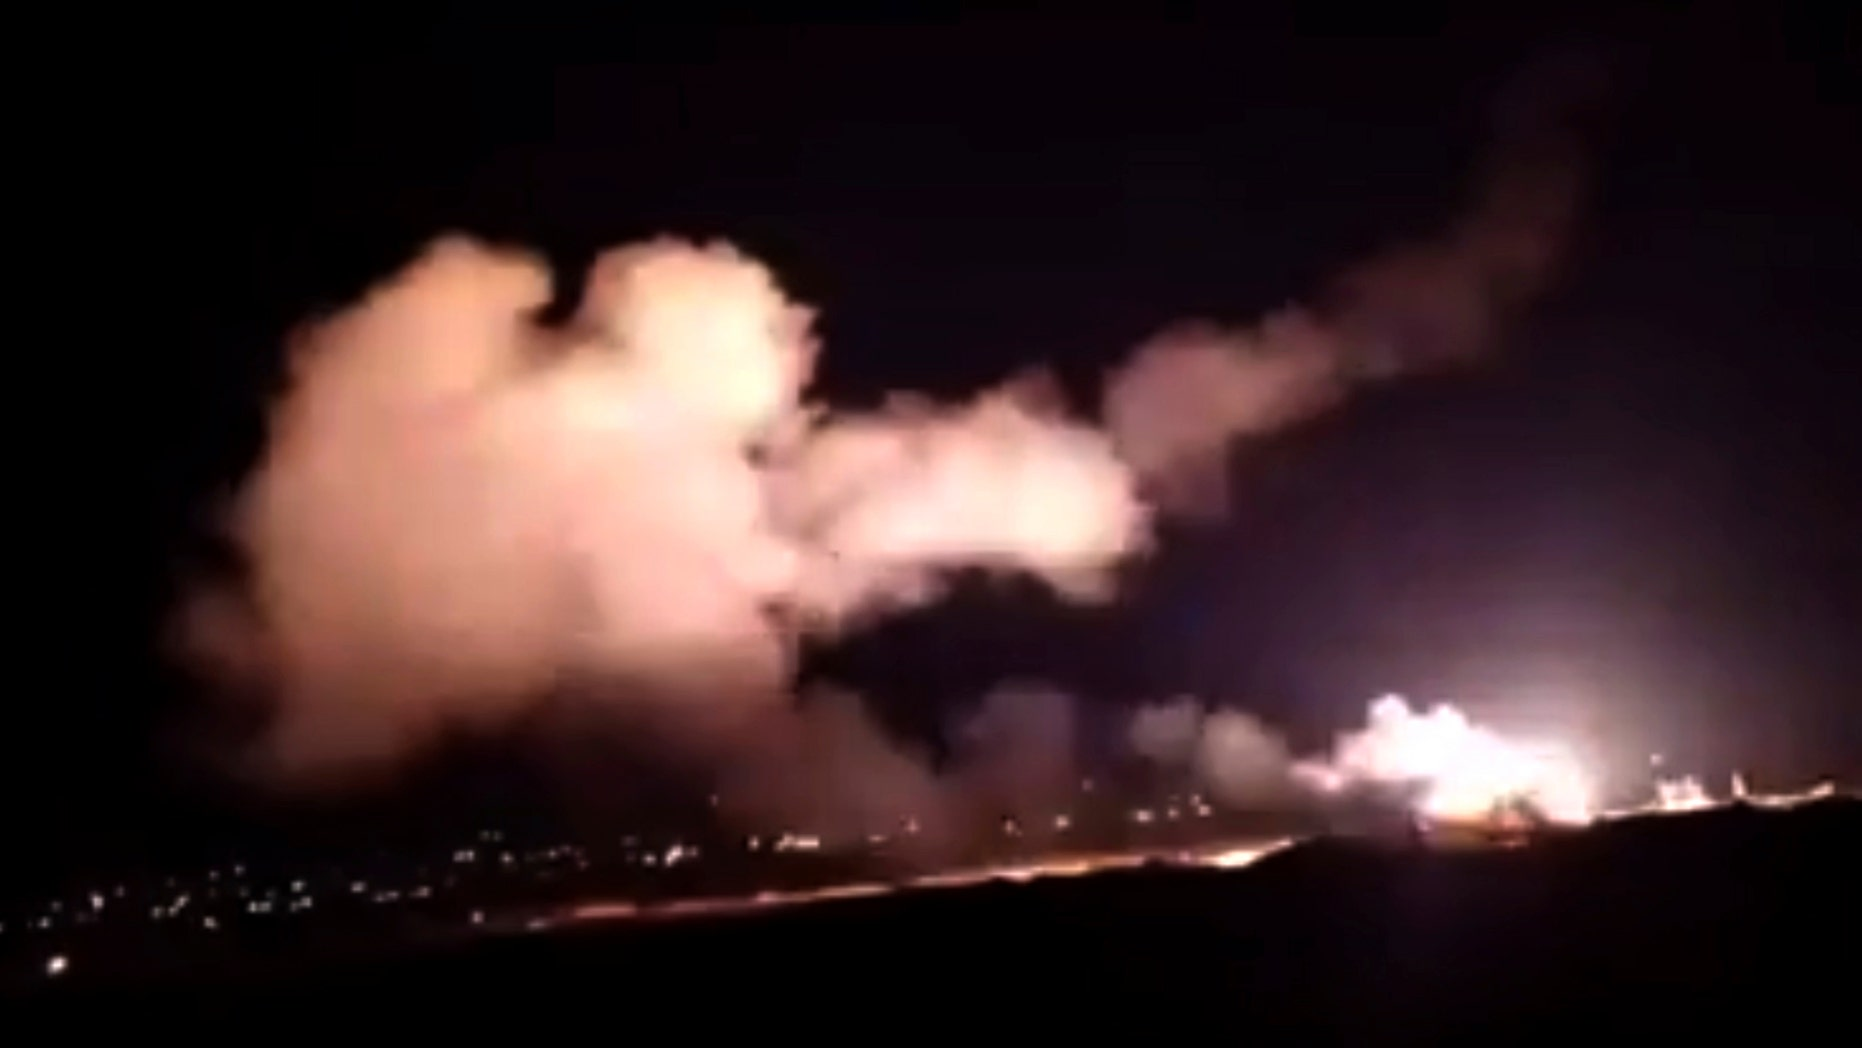 "This frame grab from a video provided by the Syrian official news agency SANA shows that rockets are flying into the sky near Damascus, Syria, Tuesday, December 25, 201<div class=""e3lan e3lan-in-post1""><script async src=""//pagead2.googlesyndication.com/pagead/js/adsbygoogle.js""></script>